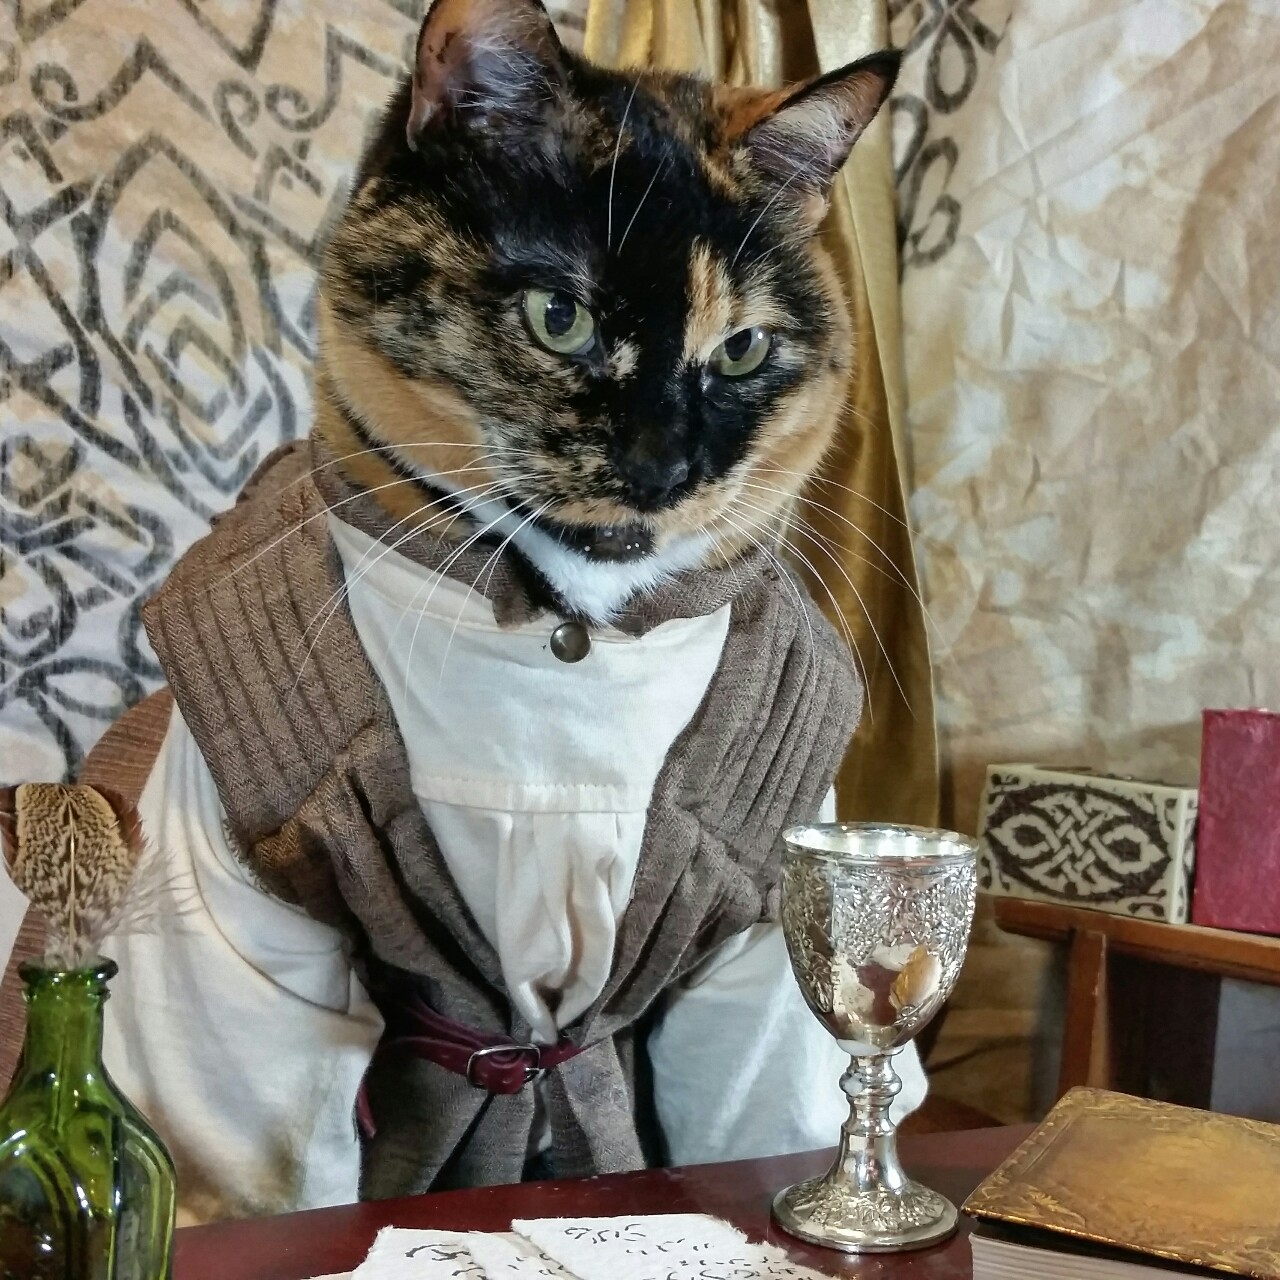 Cosplay Cats Are Taking Over the Internet - Life With Cats